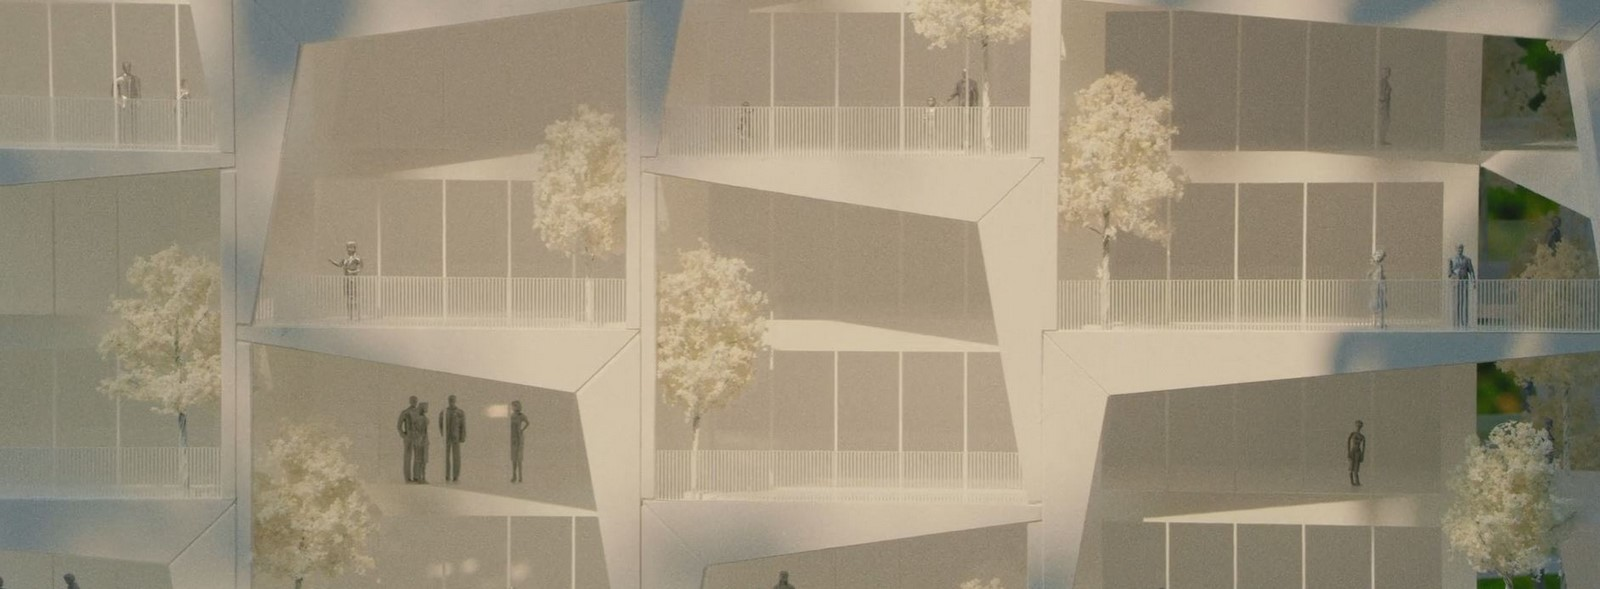 """Company to """"reimagine the way we build our homes"""" launched by Bjarke Ingels - Sheet4"""